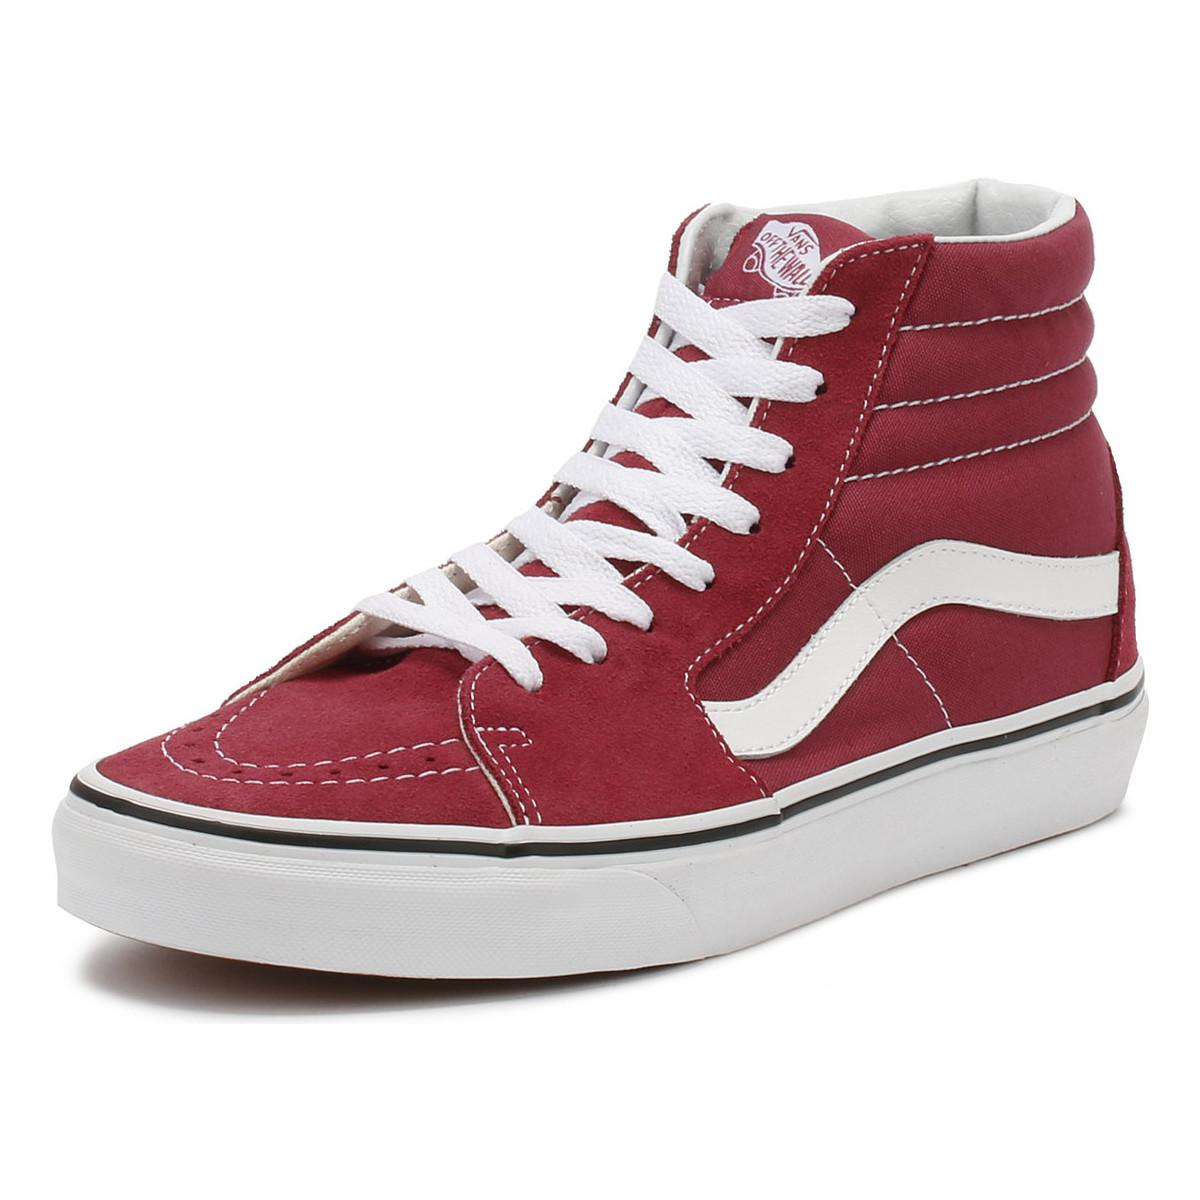 761cc11d8bf Vans - Dry Rose Red   True White Sk8-hi Trainers Women s Shoes (high. View  fullscreen